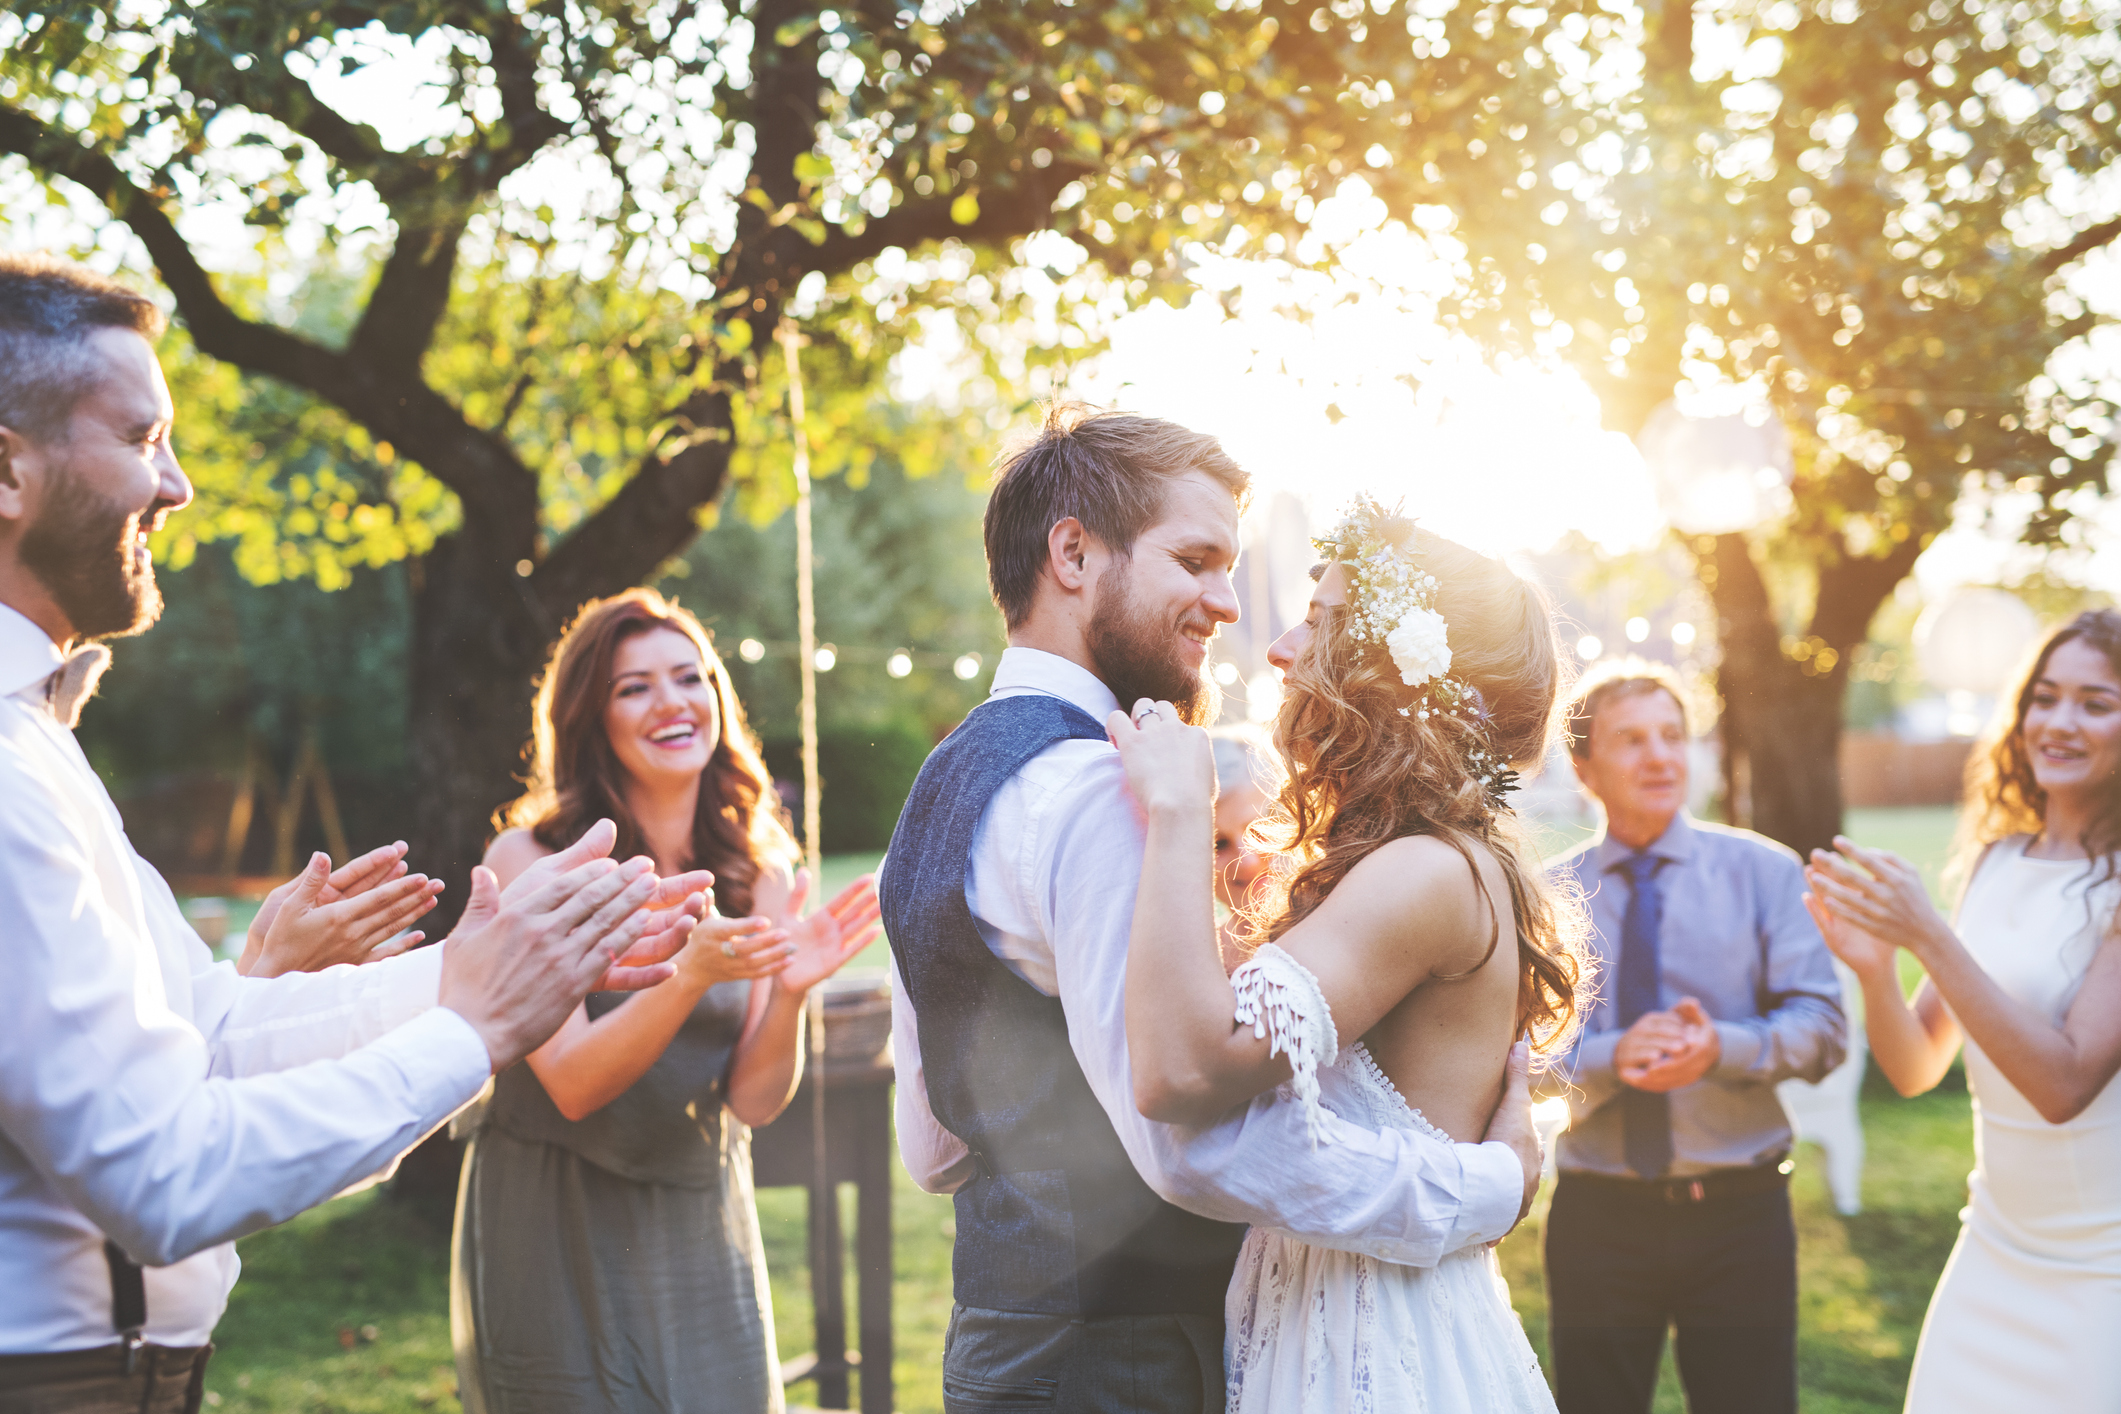 Happy Couple Embracing At Their Wedding While Surrounded By Friends And Family